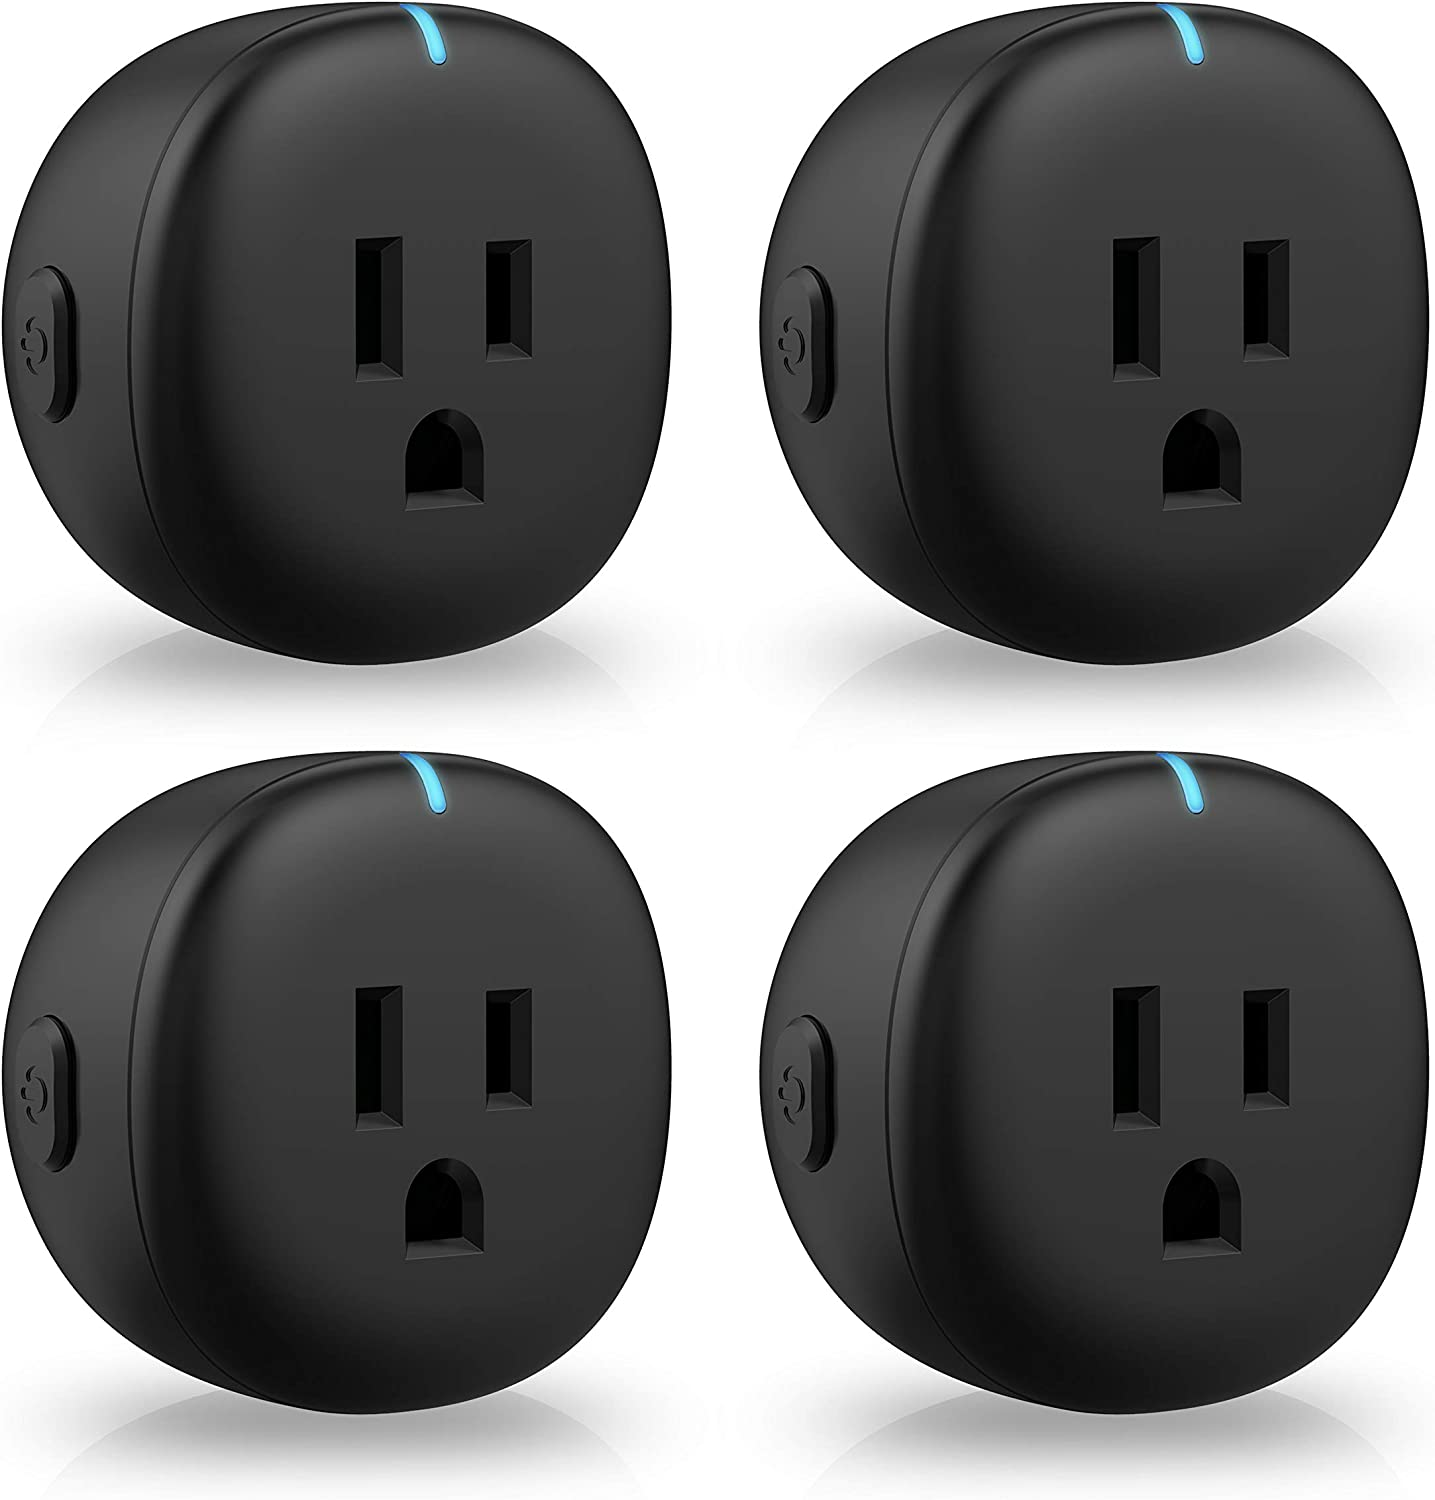 Smart Plug Black Amysen : Smart Mini WiFi Outlet, Works with Alexa and Google Home, ETL Certified, Only Supports 2.4GHz Network, No Hub Required, Remote Control, Control Your Devices from Anywhere